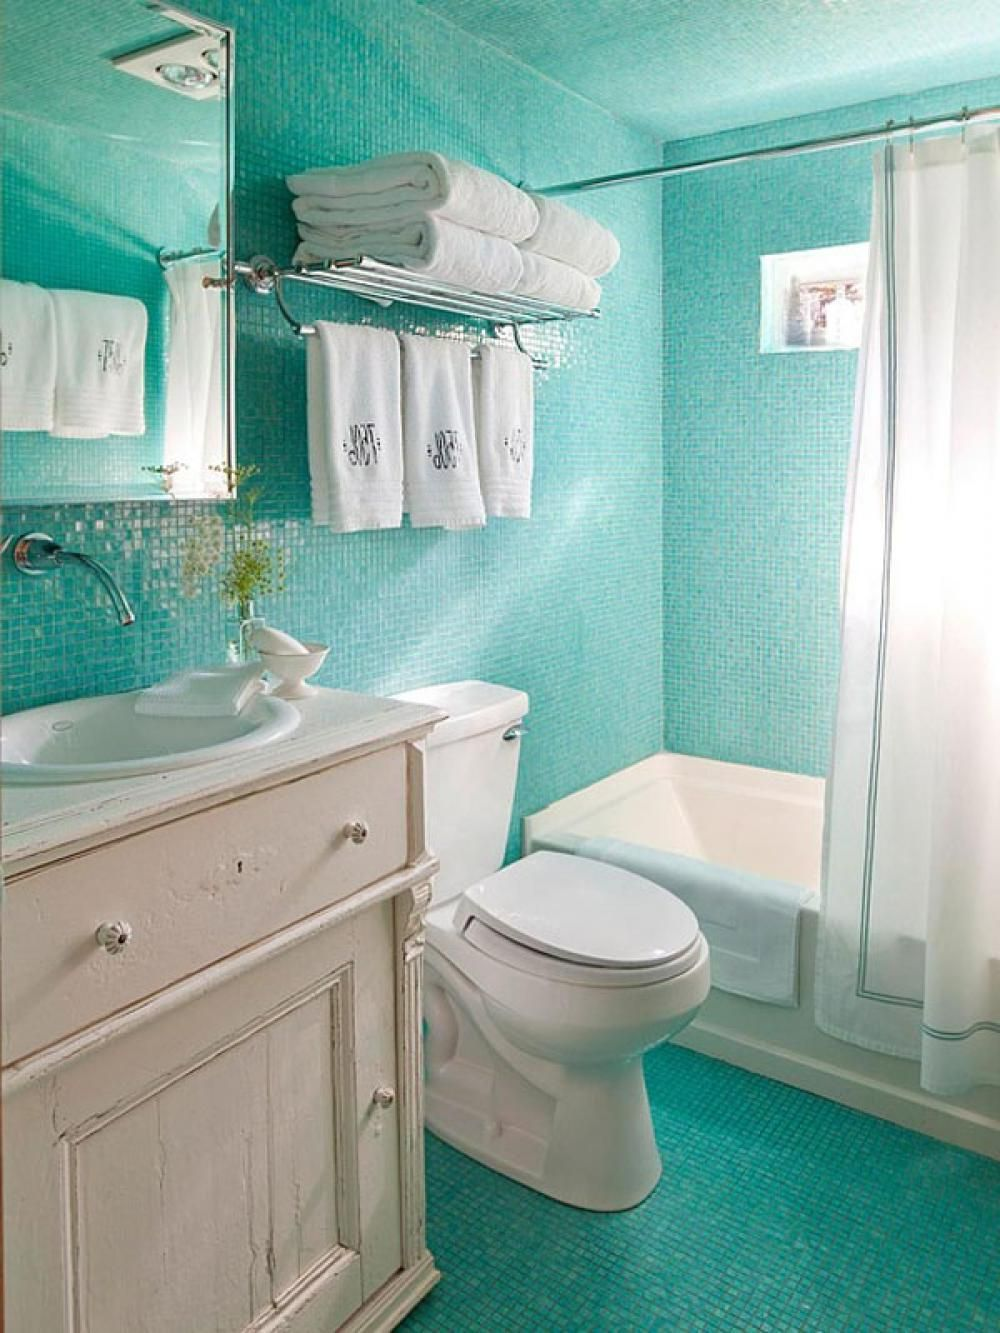 small bathroom idea glossy cyan small bathroom ideas how to choose small bathroom color bringing illusion for small bathrooms idea - Bathroom Decorating Ideas Blue Walls